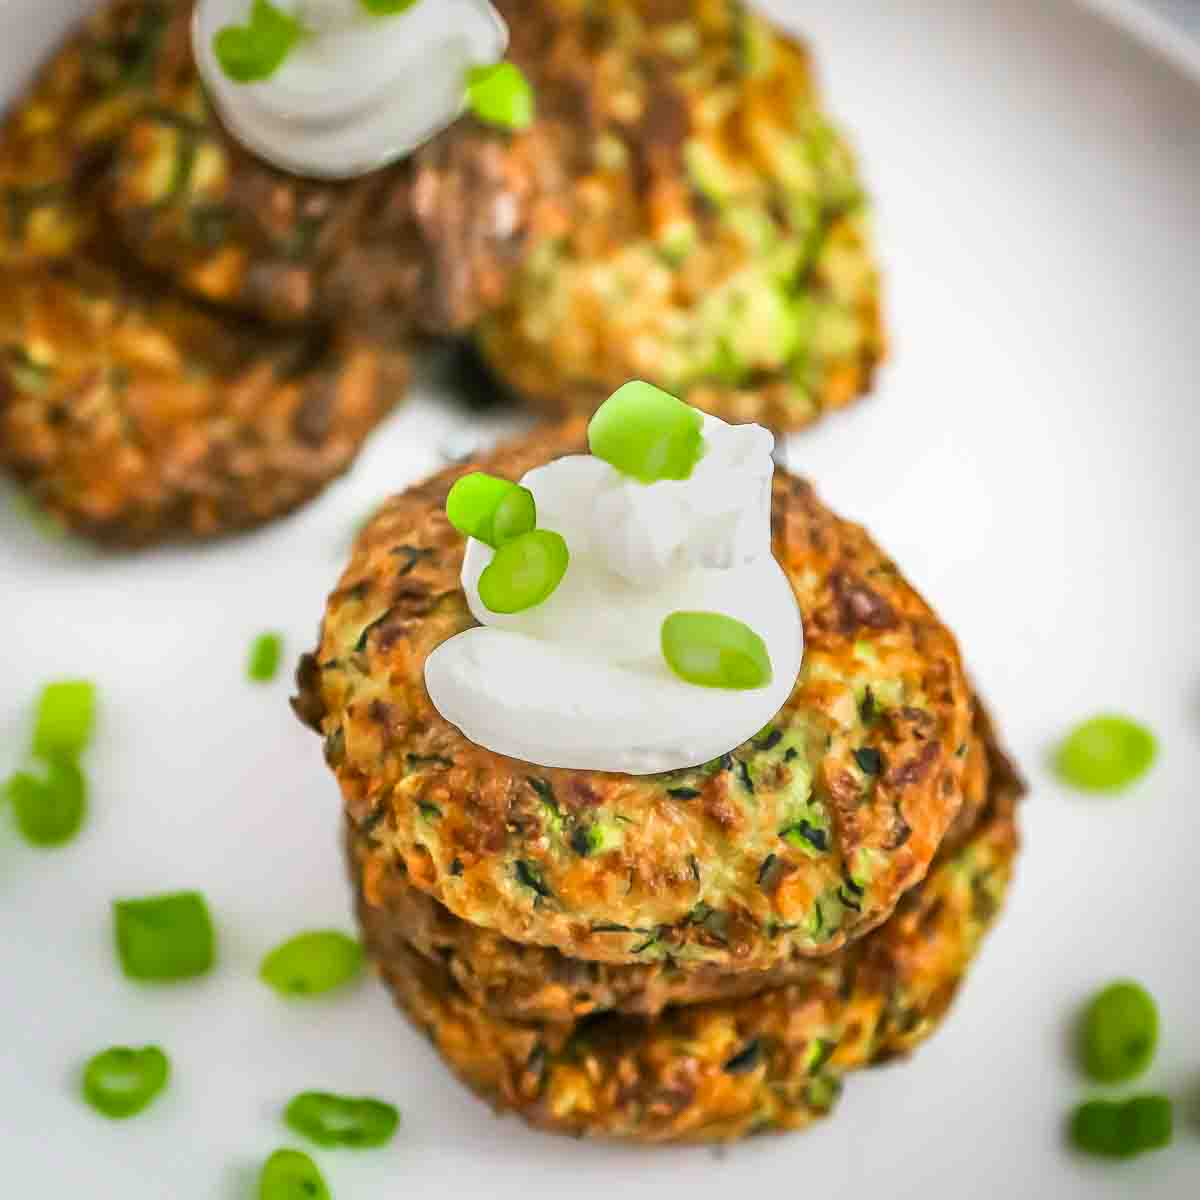 Overhead view of three zucchini fritters stacked on each other with a dollop of sour cream and green onions sprinkled on a white plate.